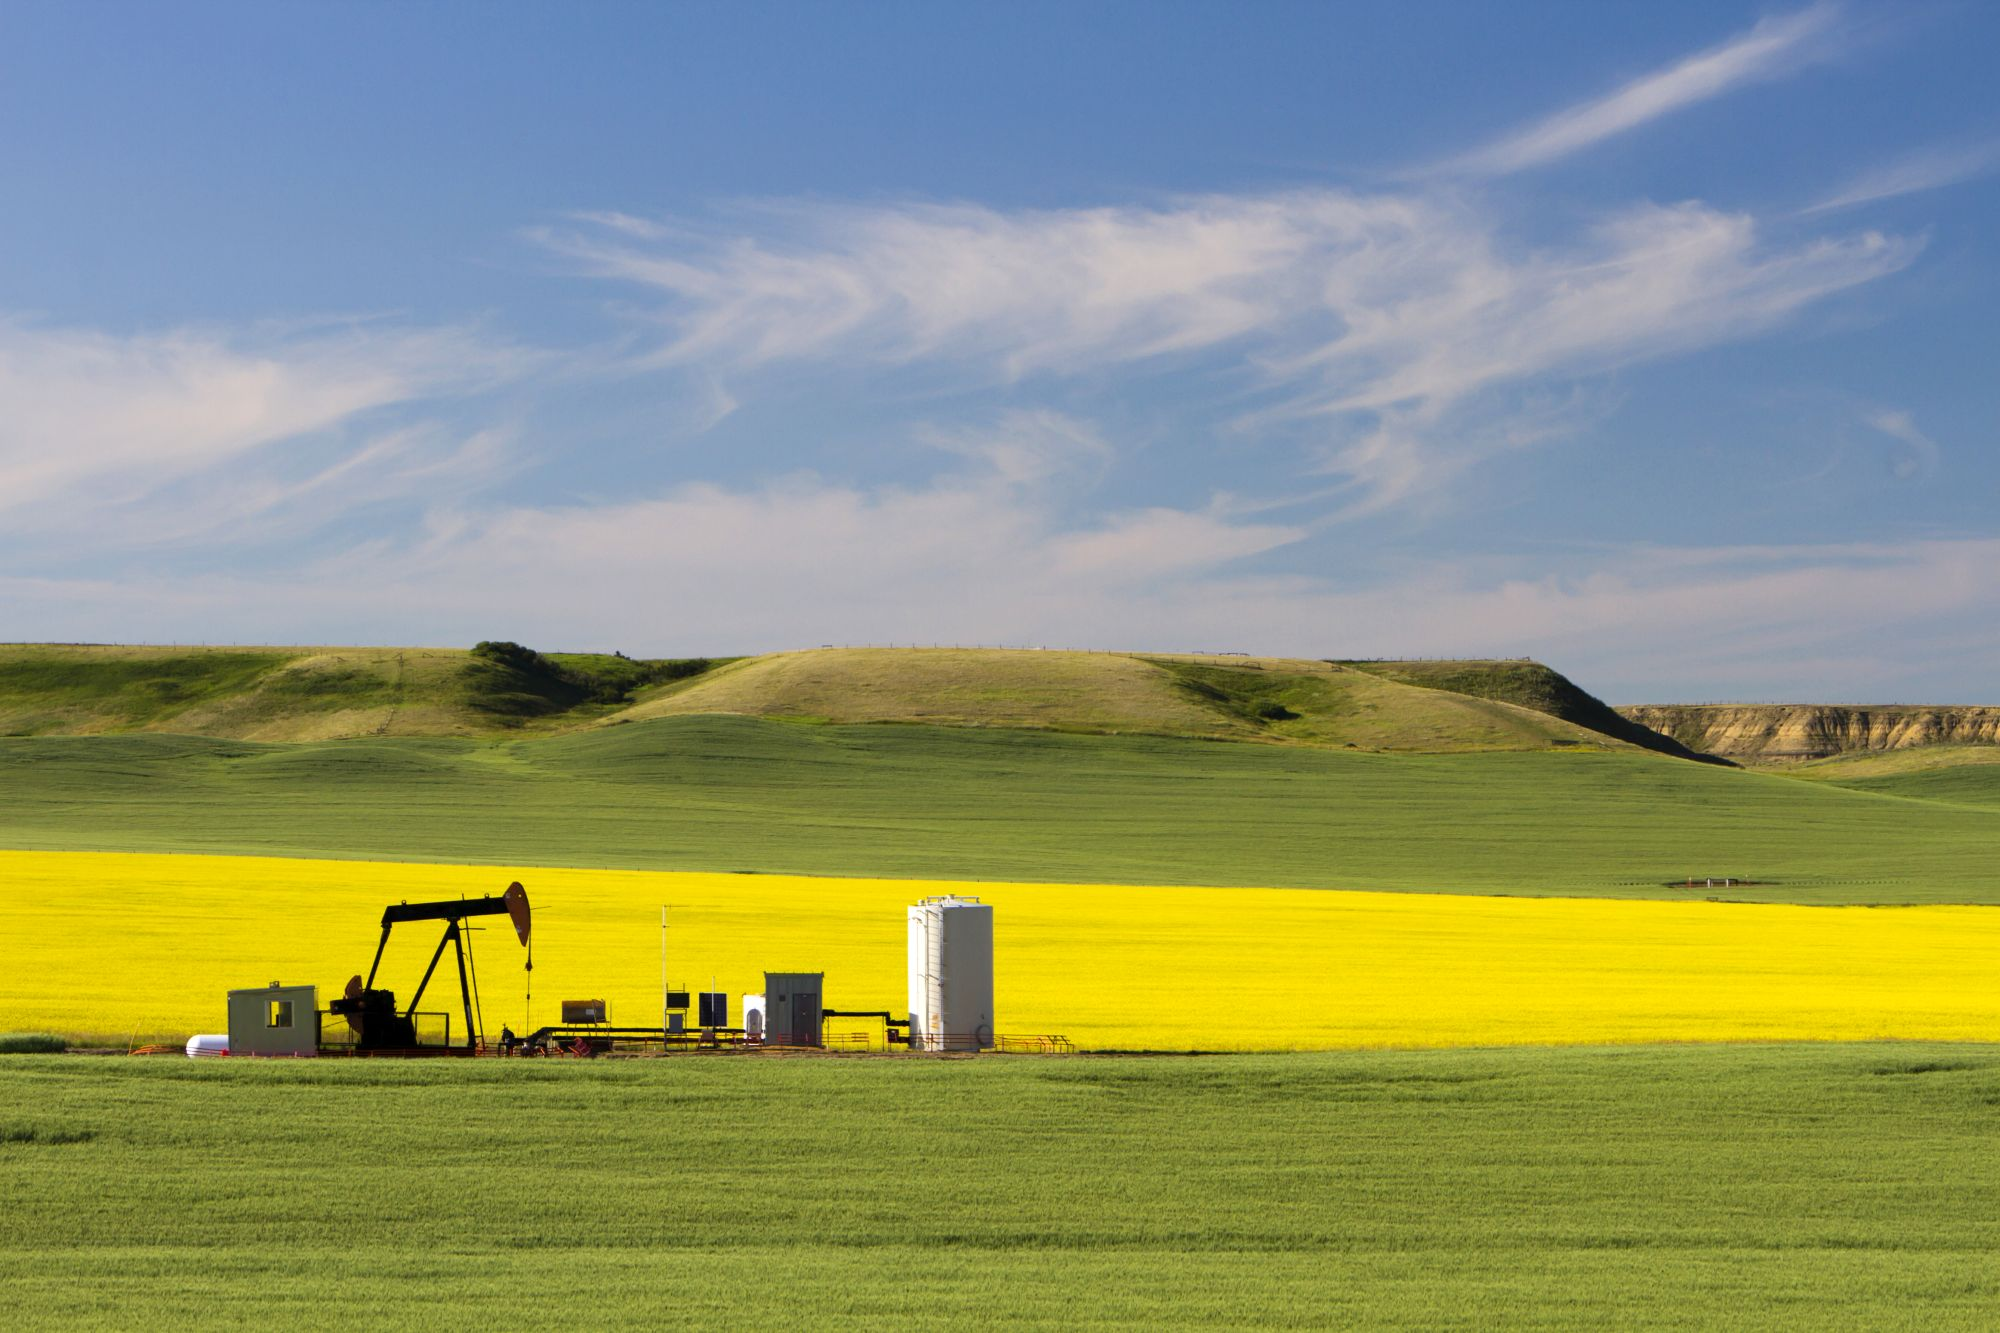 An oil pumpjack near Drumheller, Alberta, Canada. An oil pumjack is the the overground drive for a reciprocating piston pump in an oil well. It is used to mechanically lift liquid out of the well if not enough bottom hole pressure exists for the liquid to flow all the way to the surface.